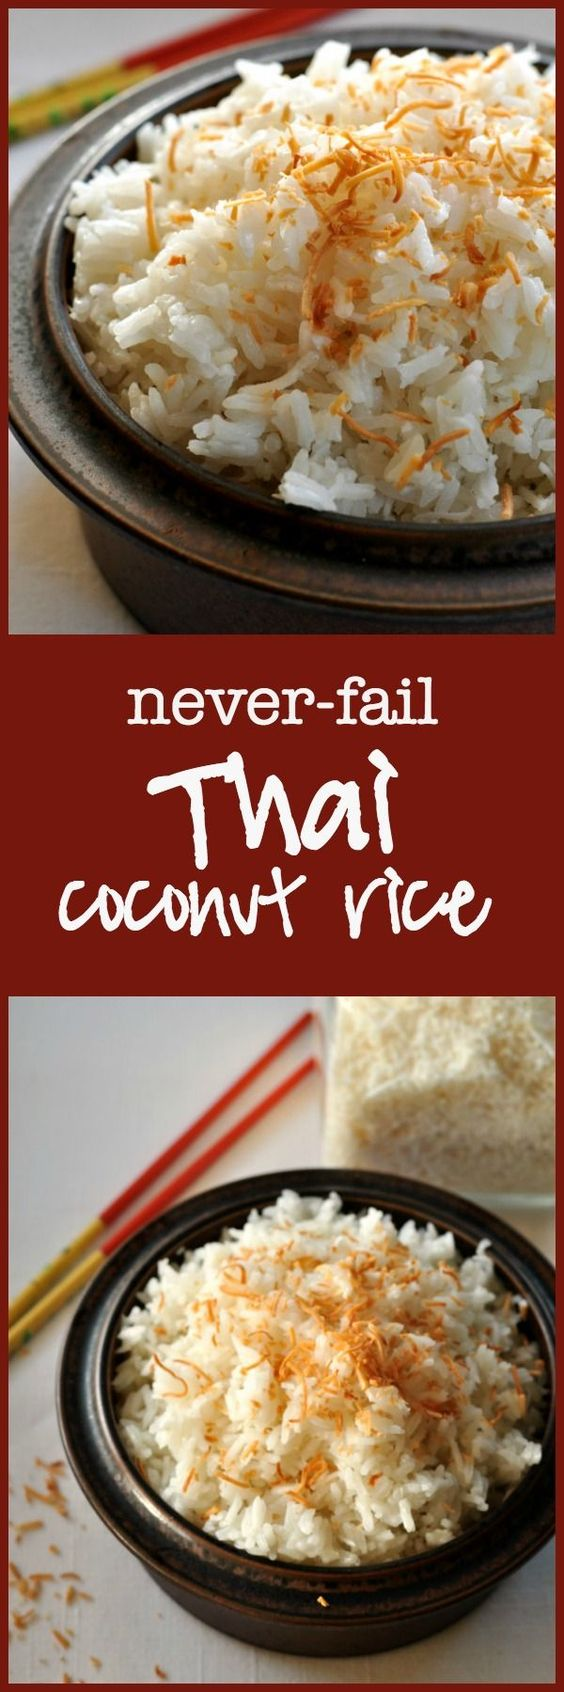 This is an easy coconut rice recipe for fluffy Thai coconut rice. You can pair with with Thai cuisine or other dishes.